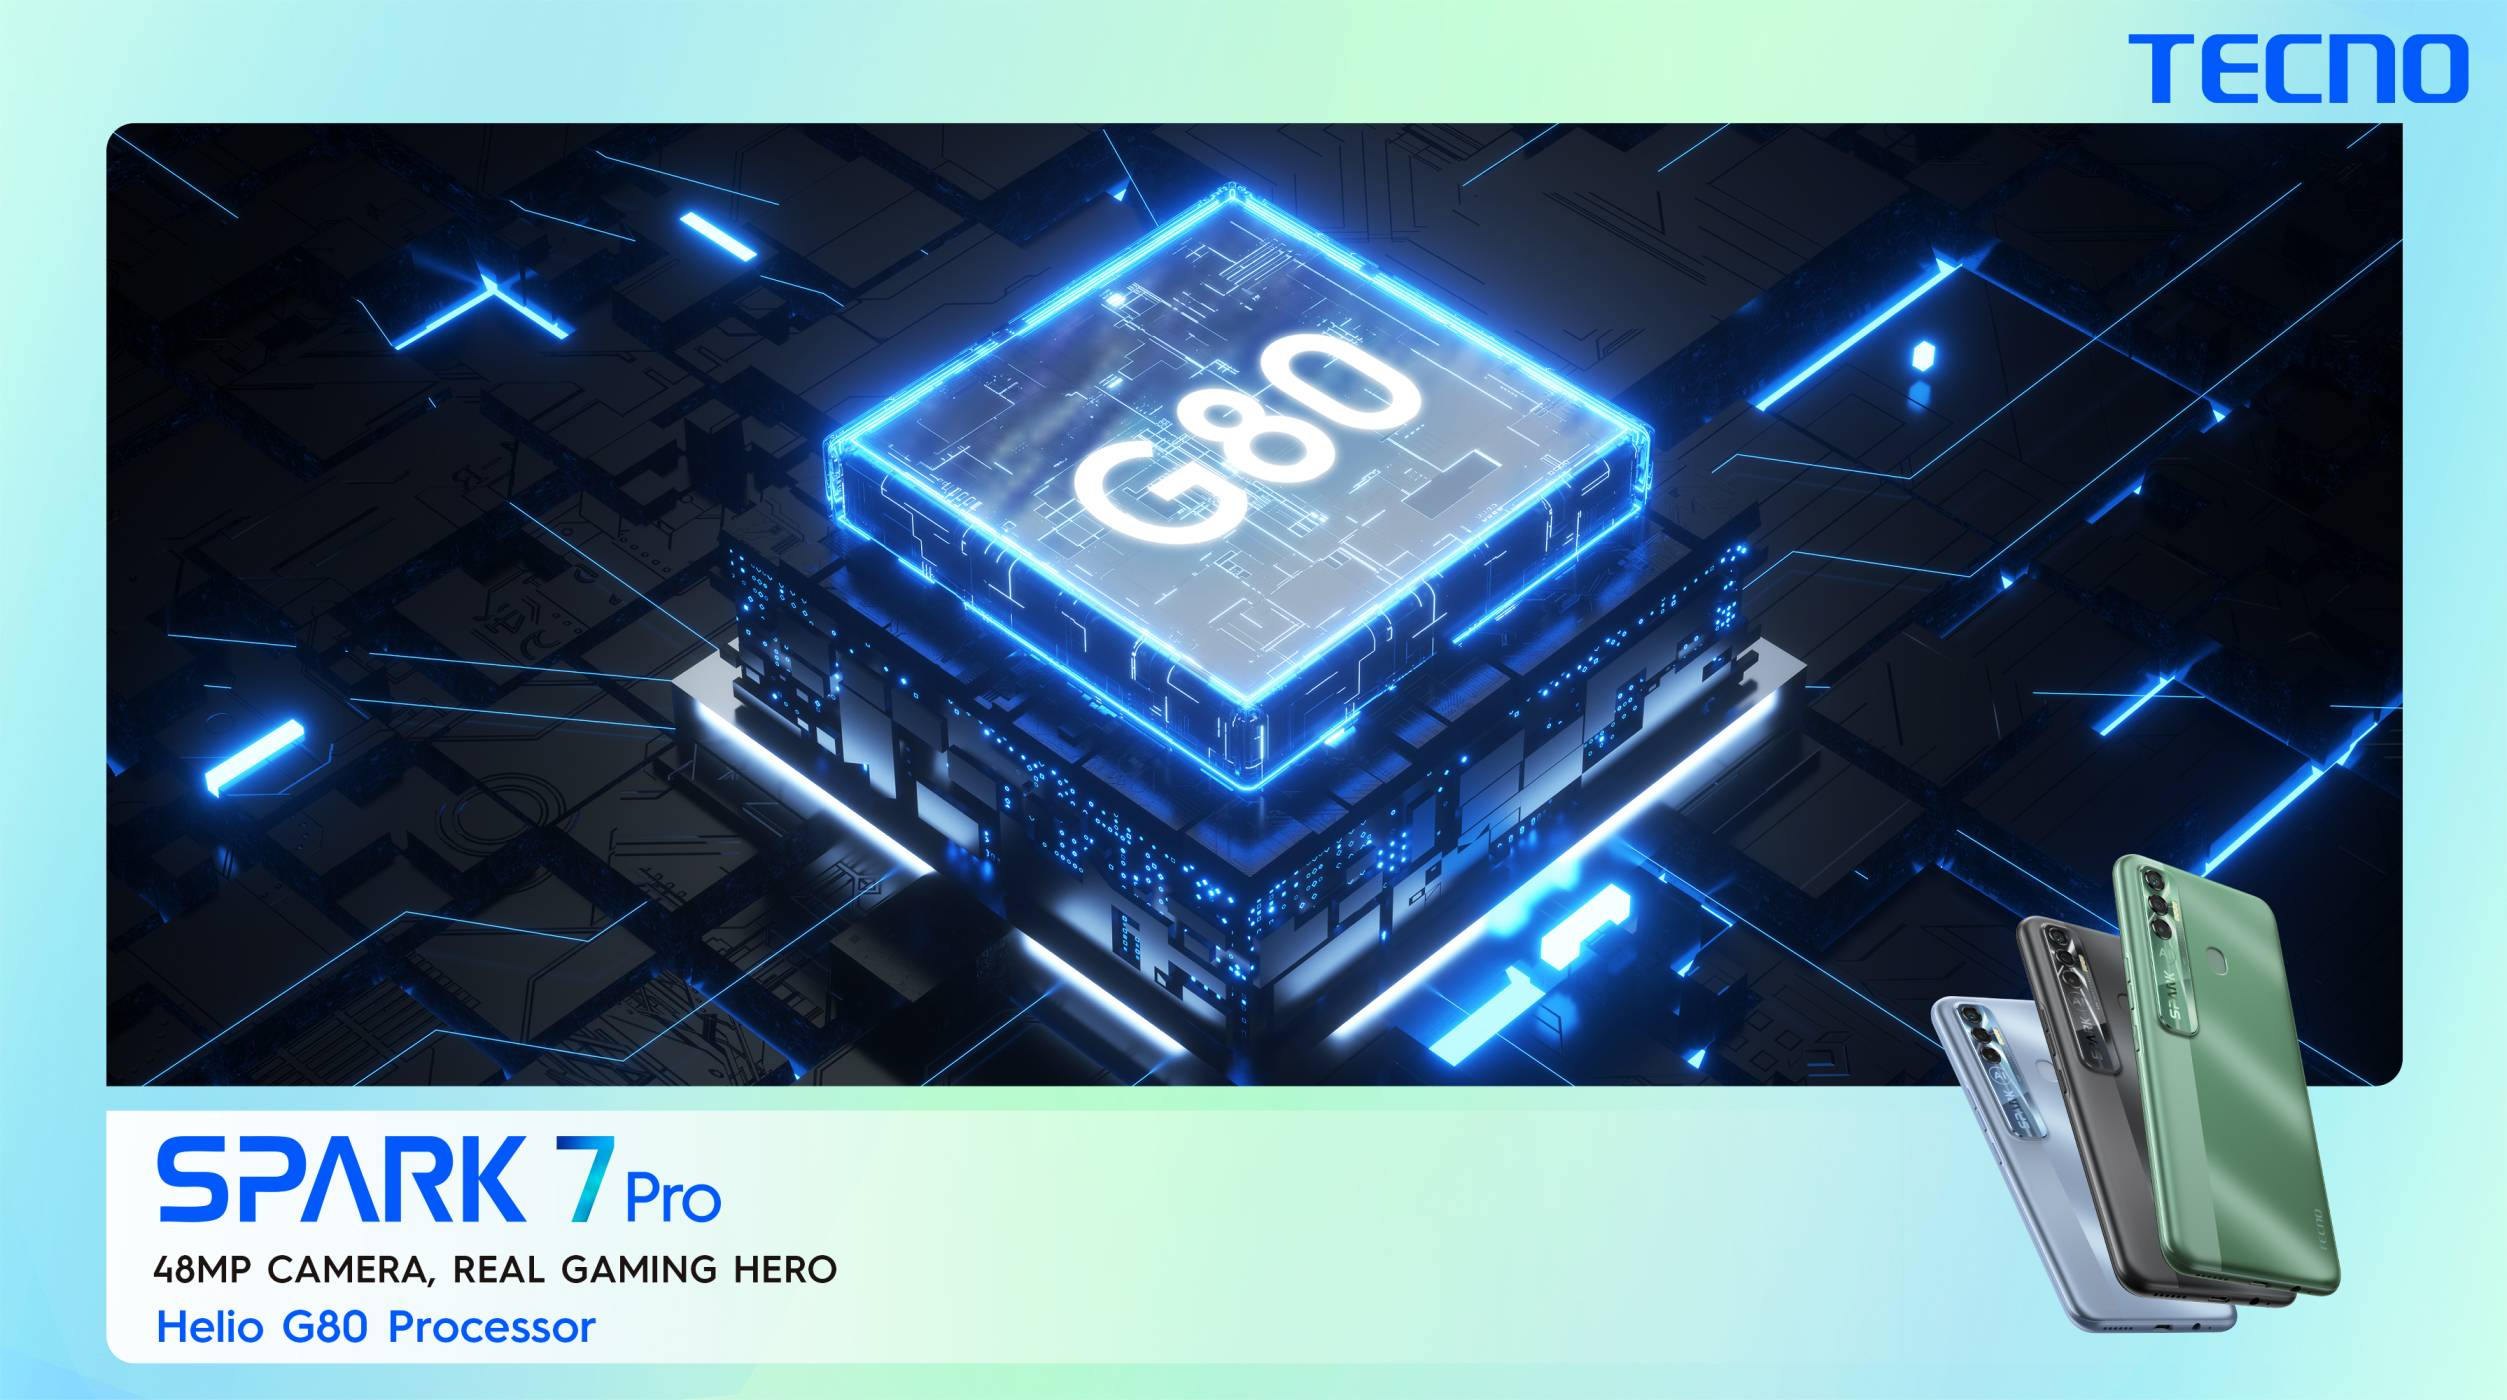 The Gaming King TECNO Spark 7 Pro now available in the Offline market